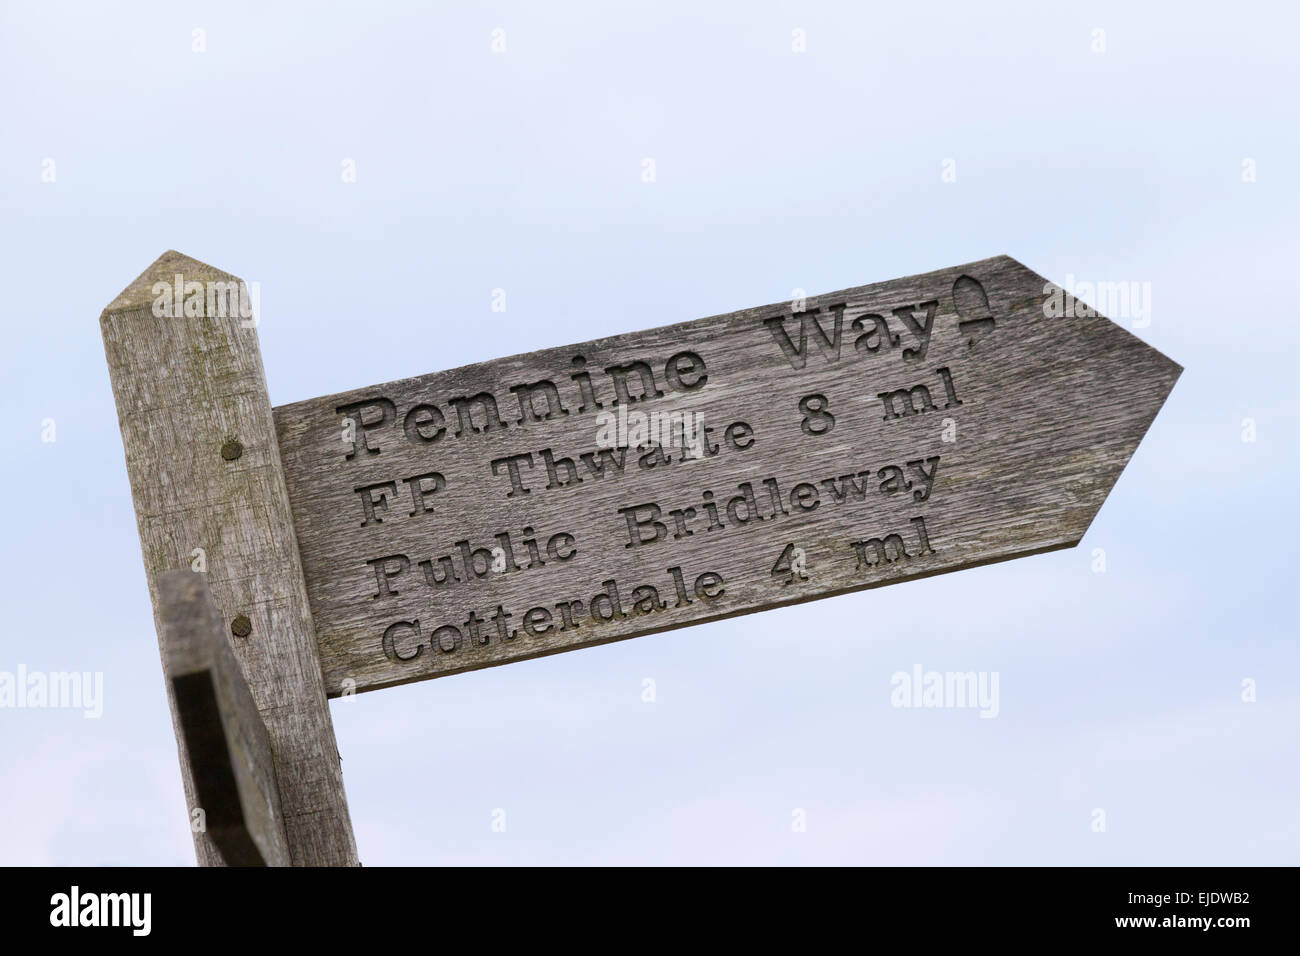 Sign on the Pennine Way footpath at Hardraw near Hawes, Yorkshire Dales, England UK - Stock Image